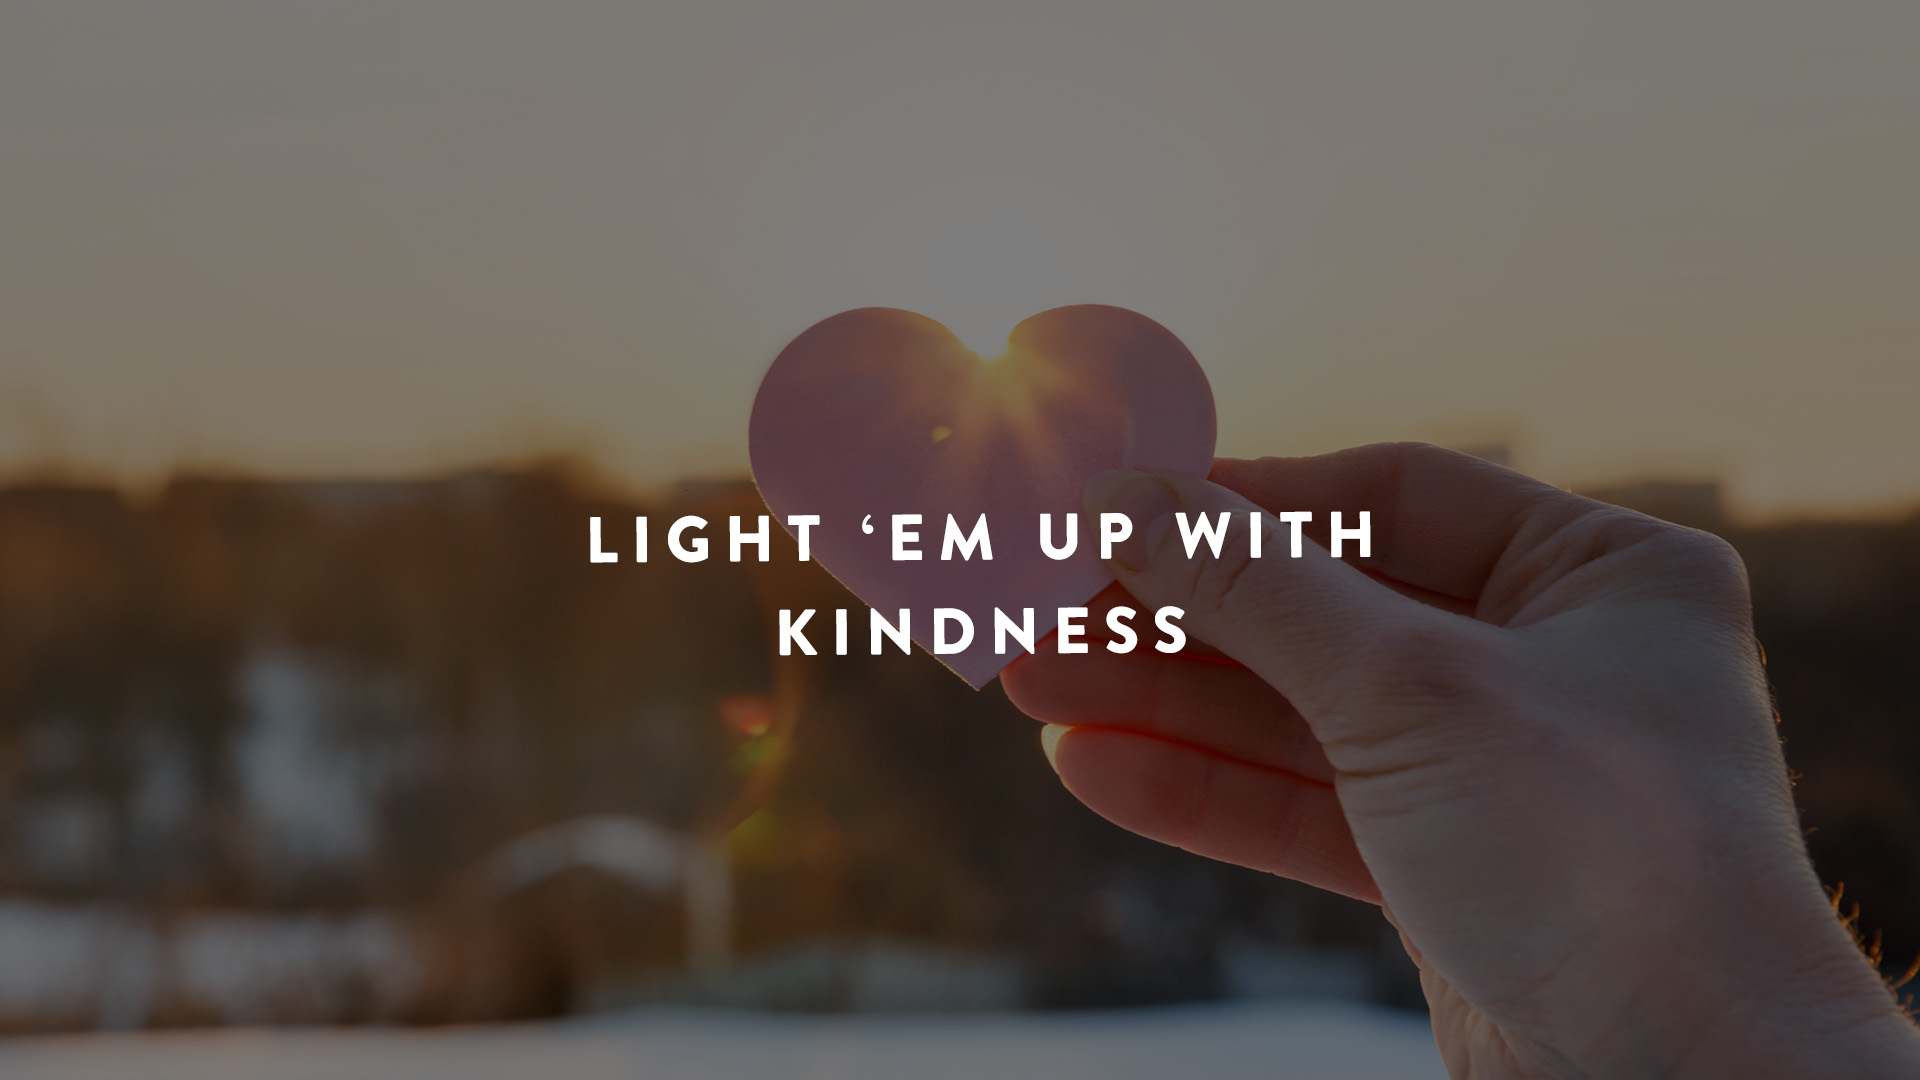 Light em up with kindness